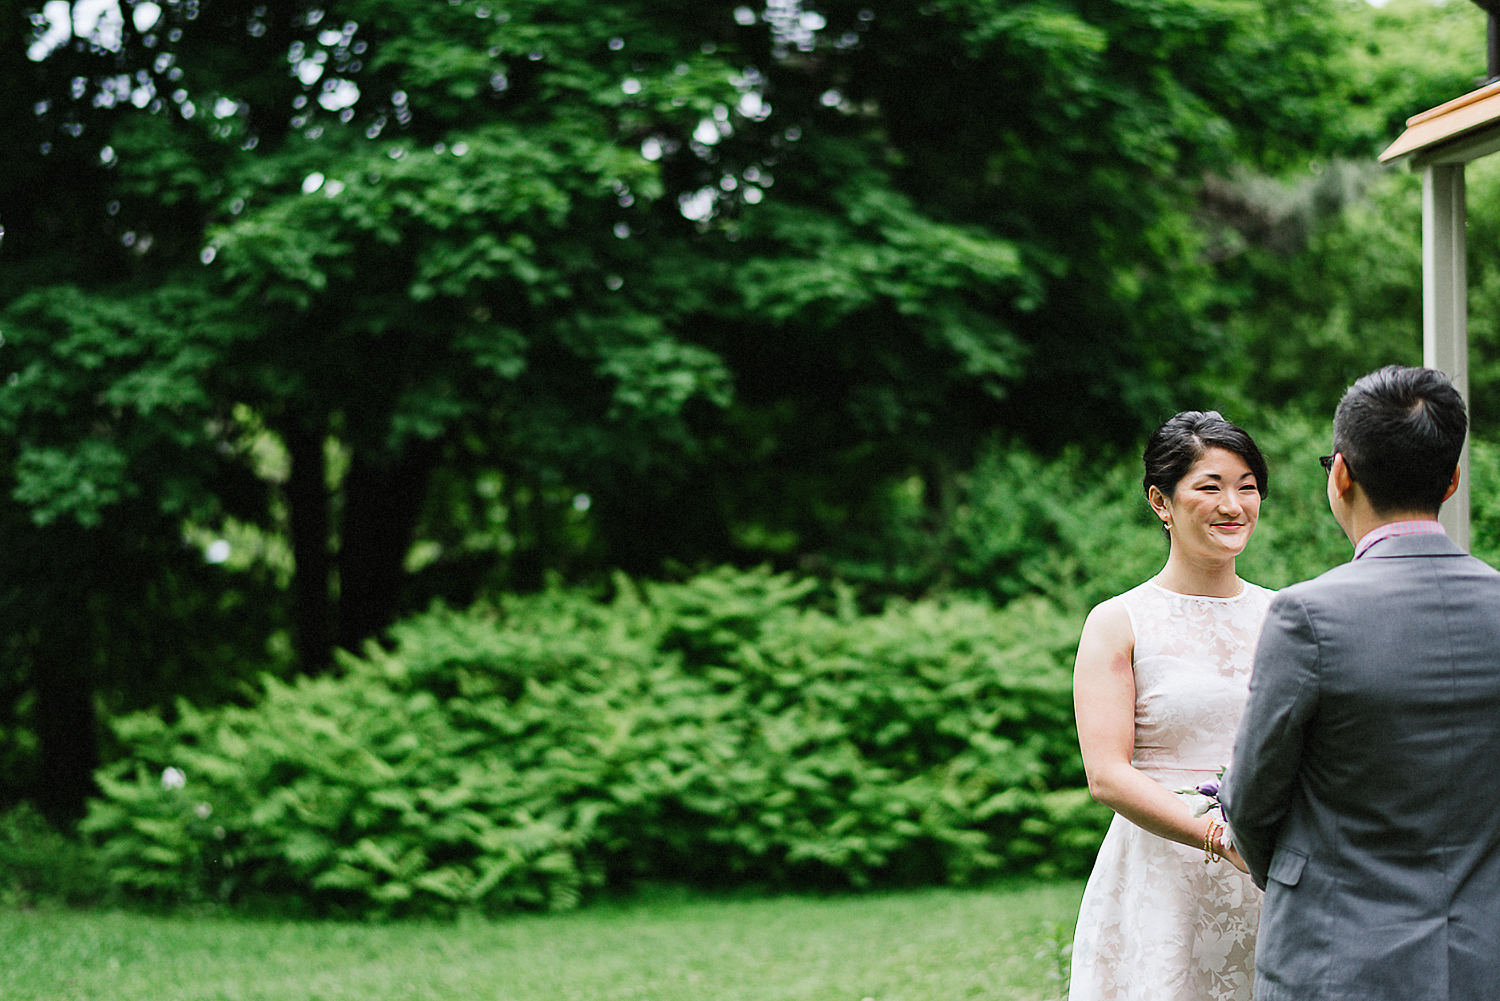 Outdoor-Wedding-Venues-Toronto-High-Park-Colbourn-Lodge-Vintage-Forest-Wedding-Bride-and-Groom-Candid-Documentary-Fine-art-wedding-photographer-Best-Wedding-Photos-Bride-Candid-Happiness.jpg